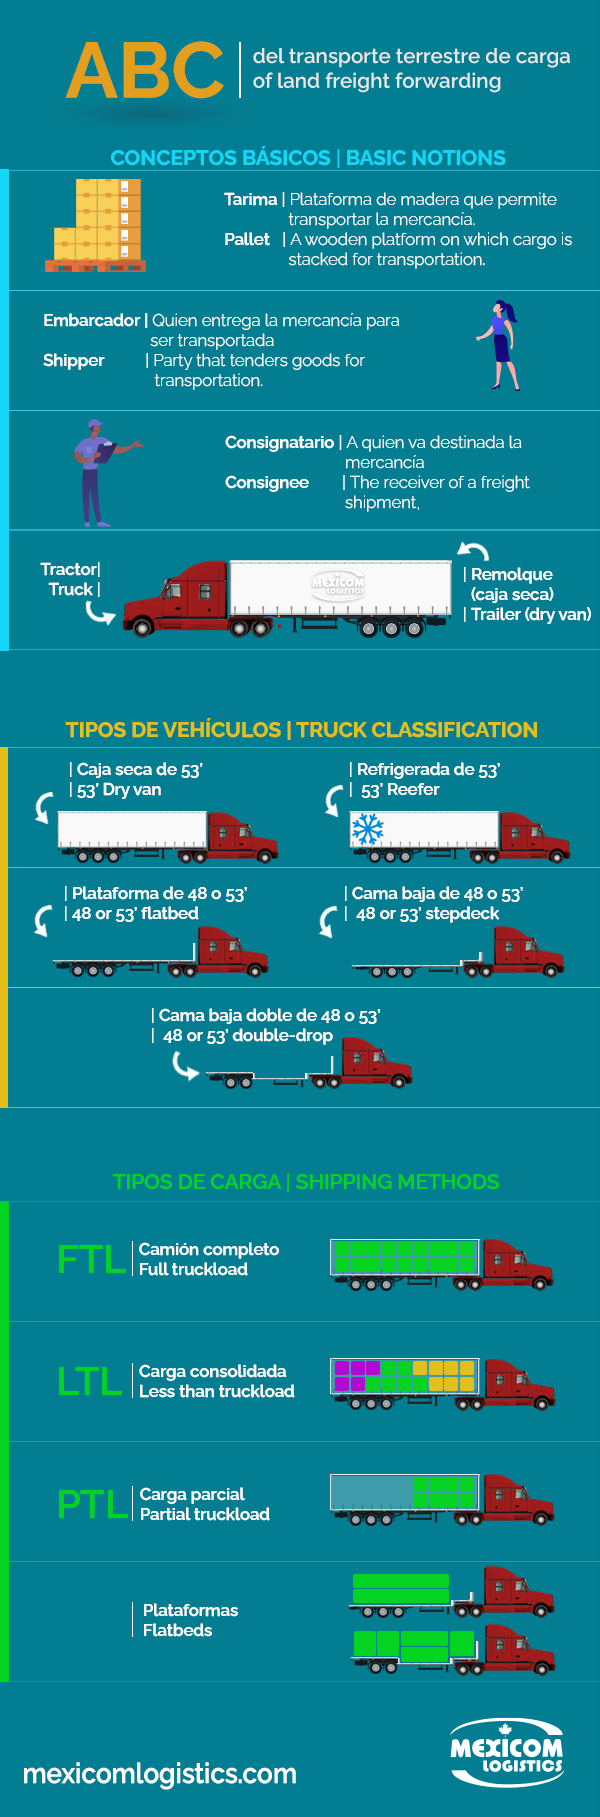 [INFOGRAPHIC] ABC of land freight forwarding